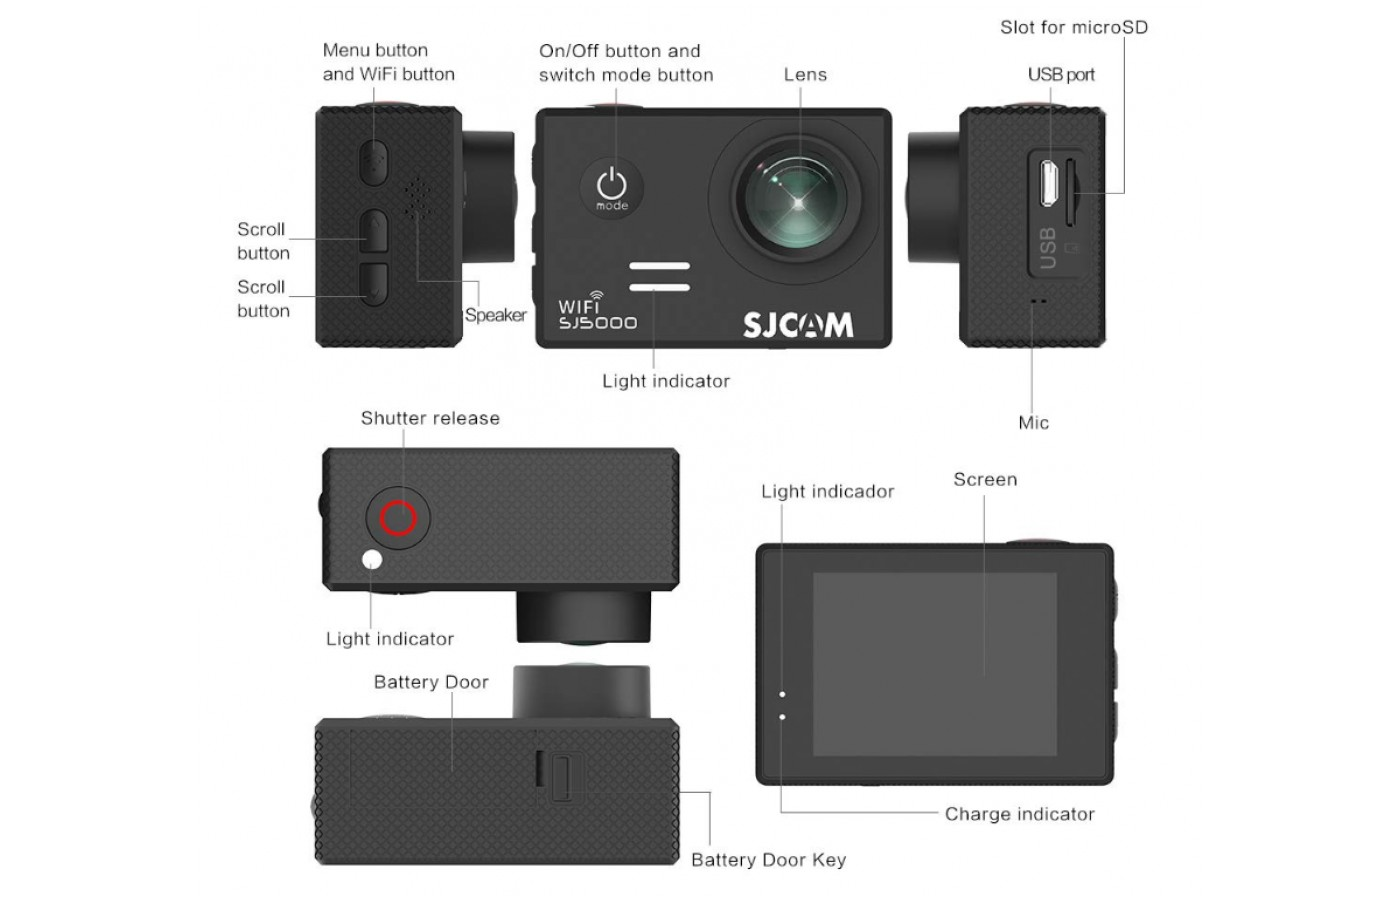 With an easy to use design you can get ready to take every photo and video you need.